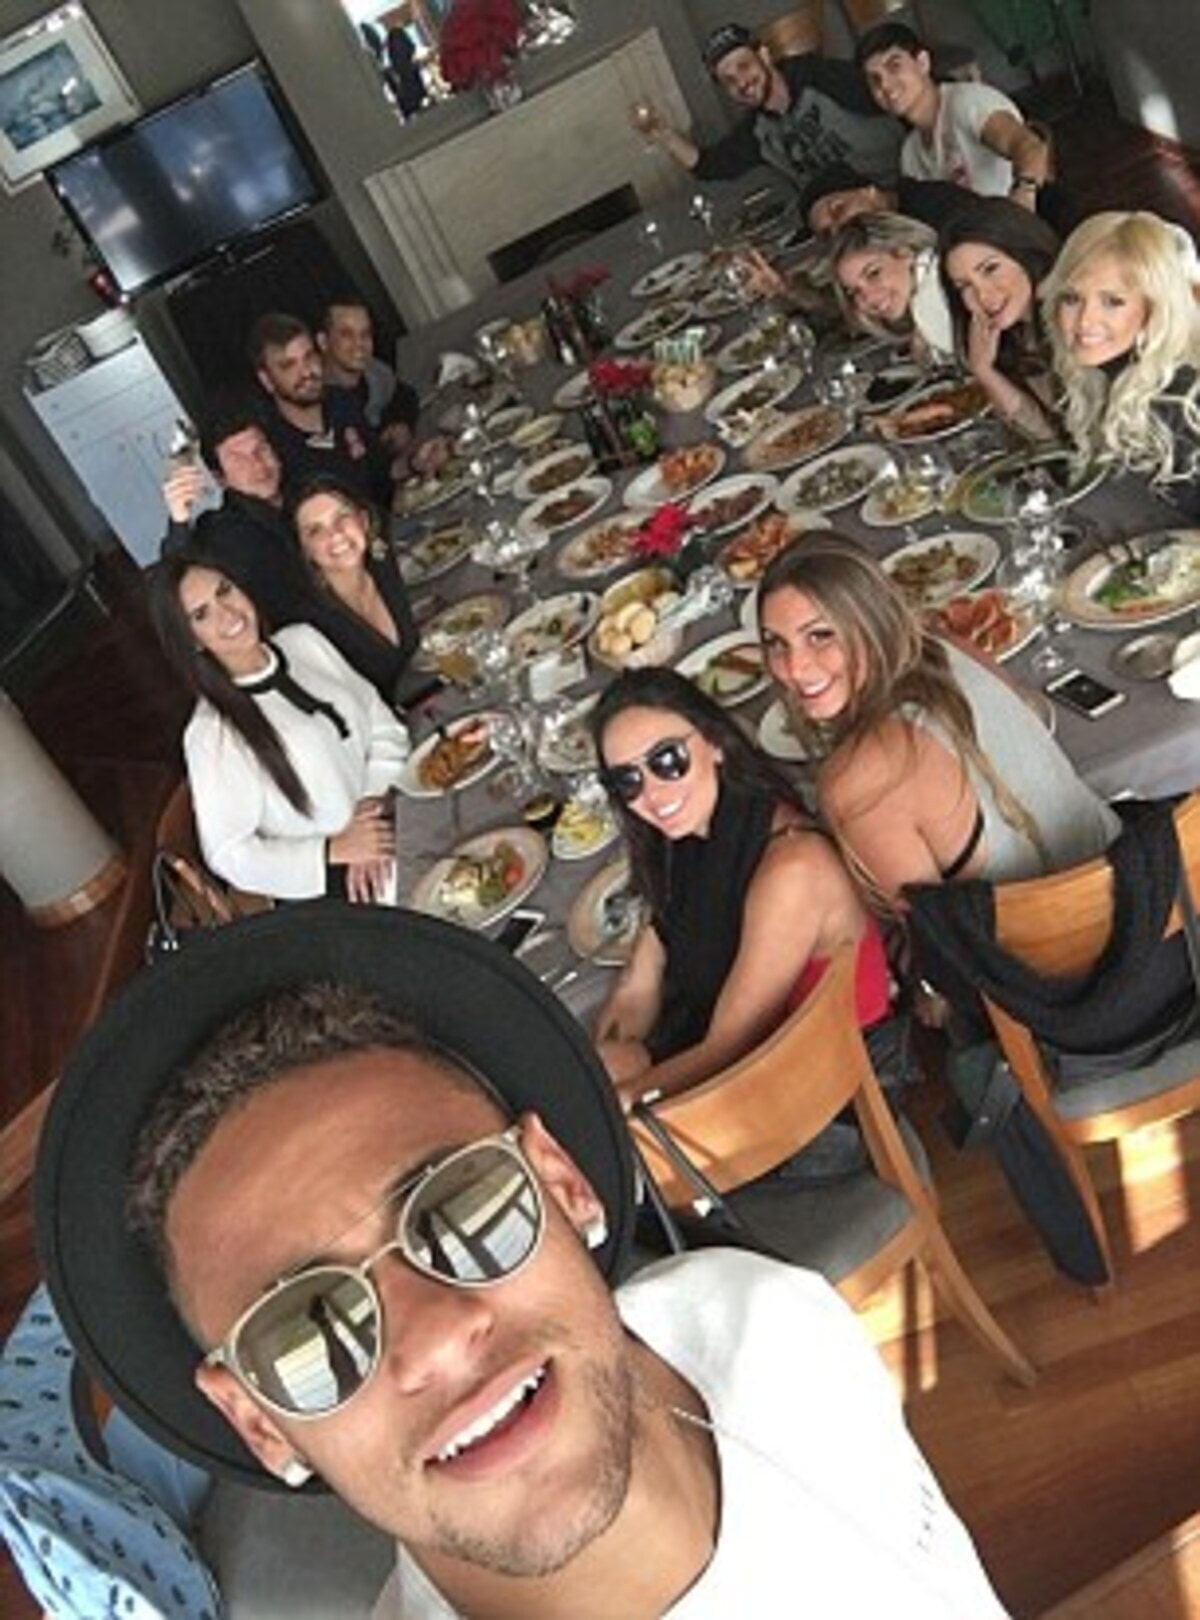 2FB54A6F00000578-0-Andrade_was_first_spotted_on_Neymar_s_Instagram_as_they_enjoyed_-m-41_1451580388231